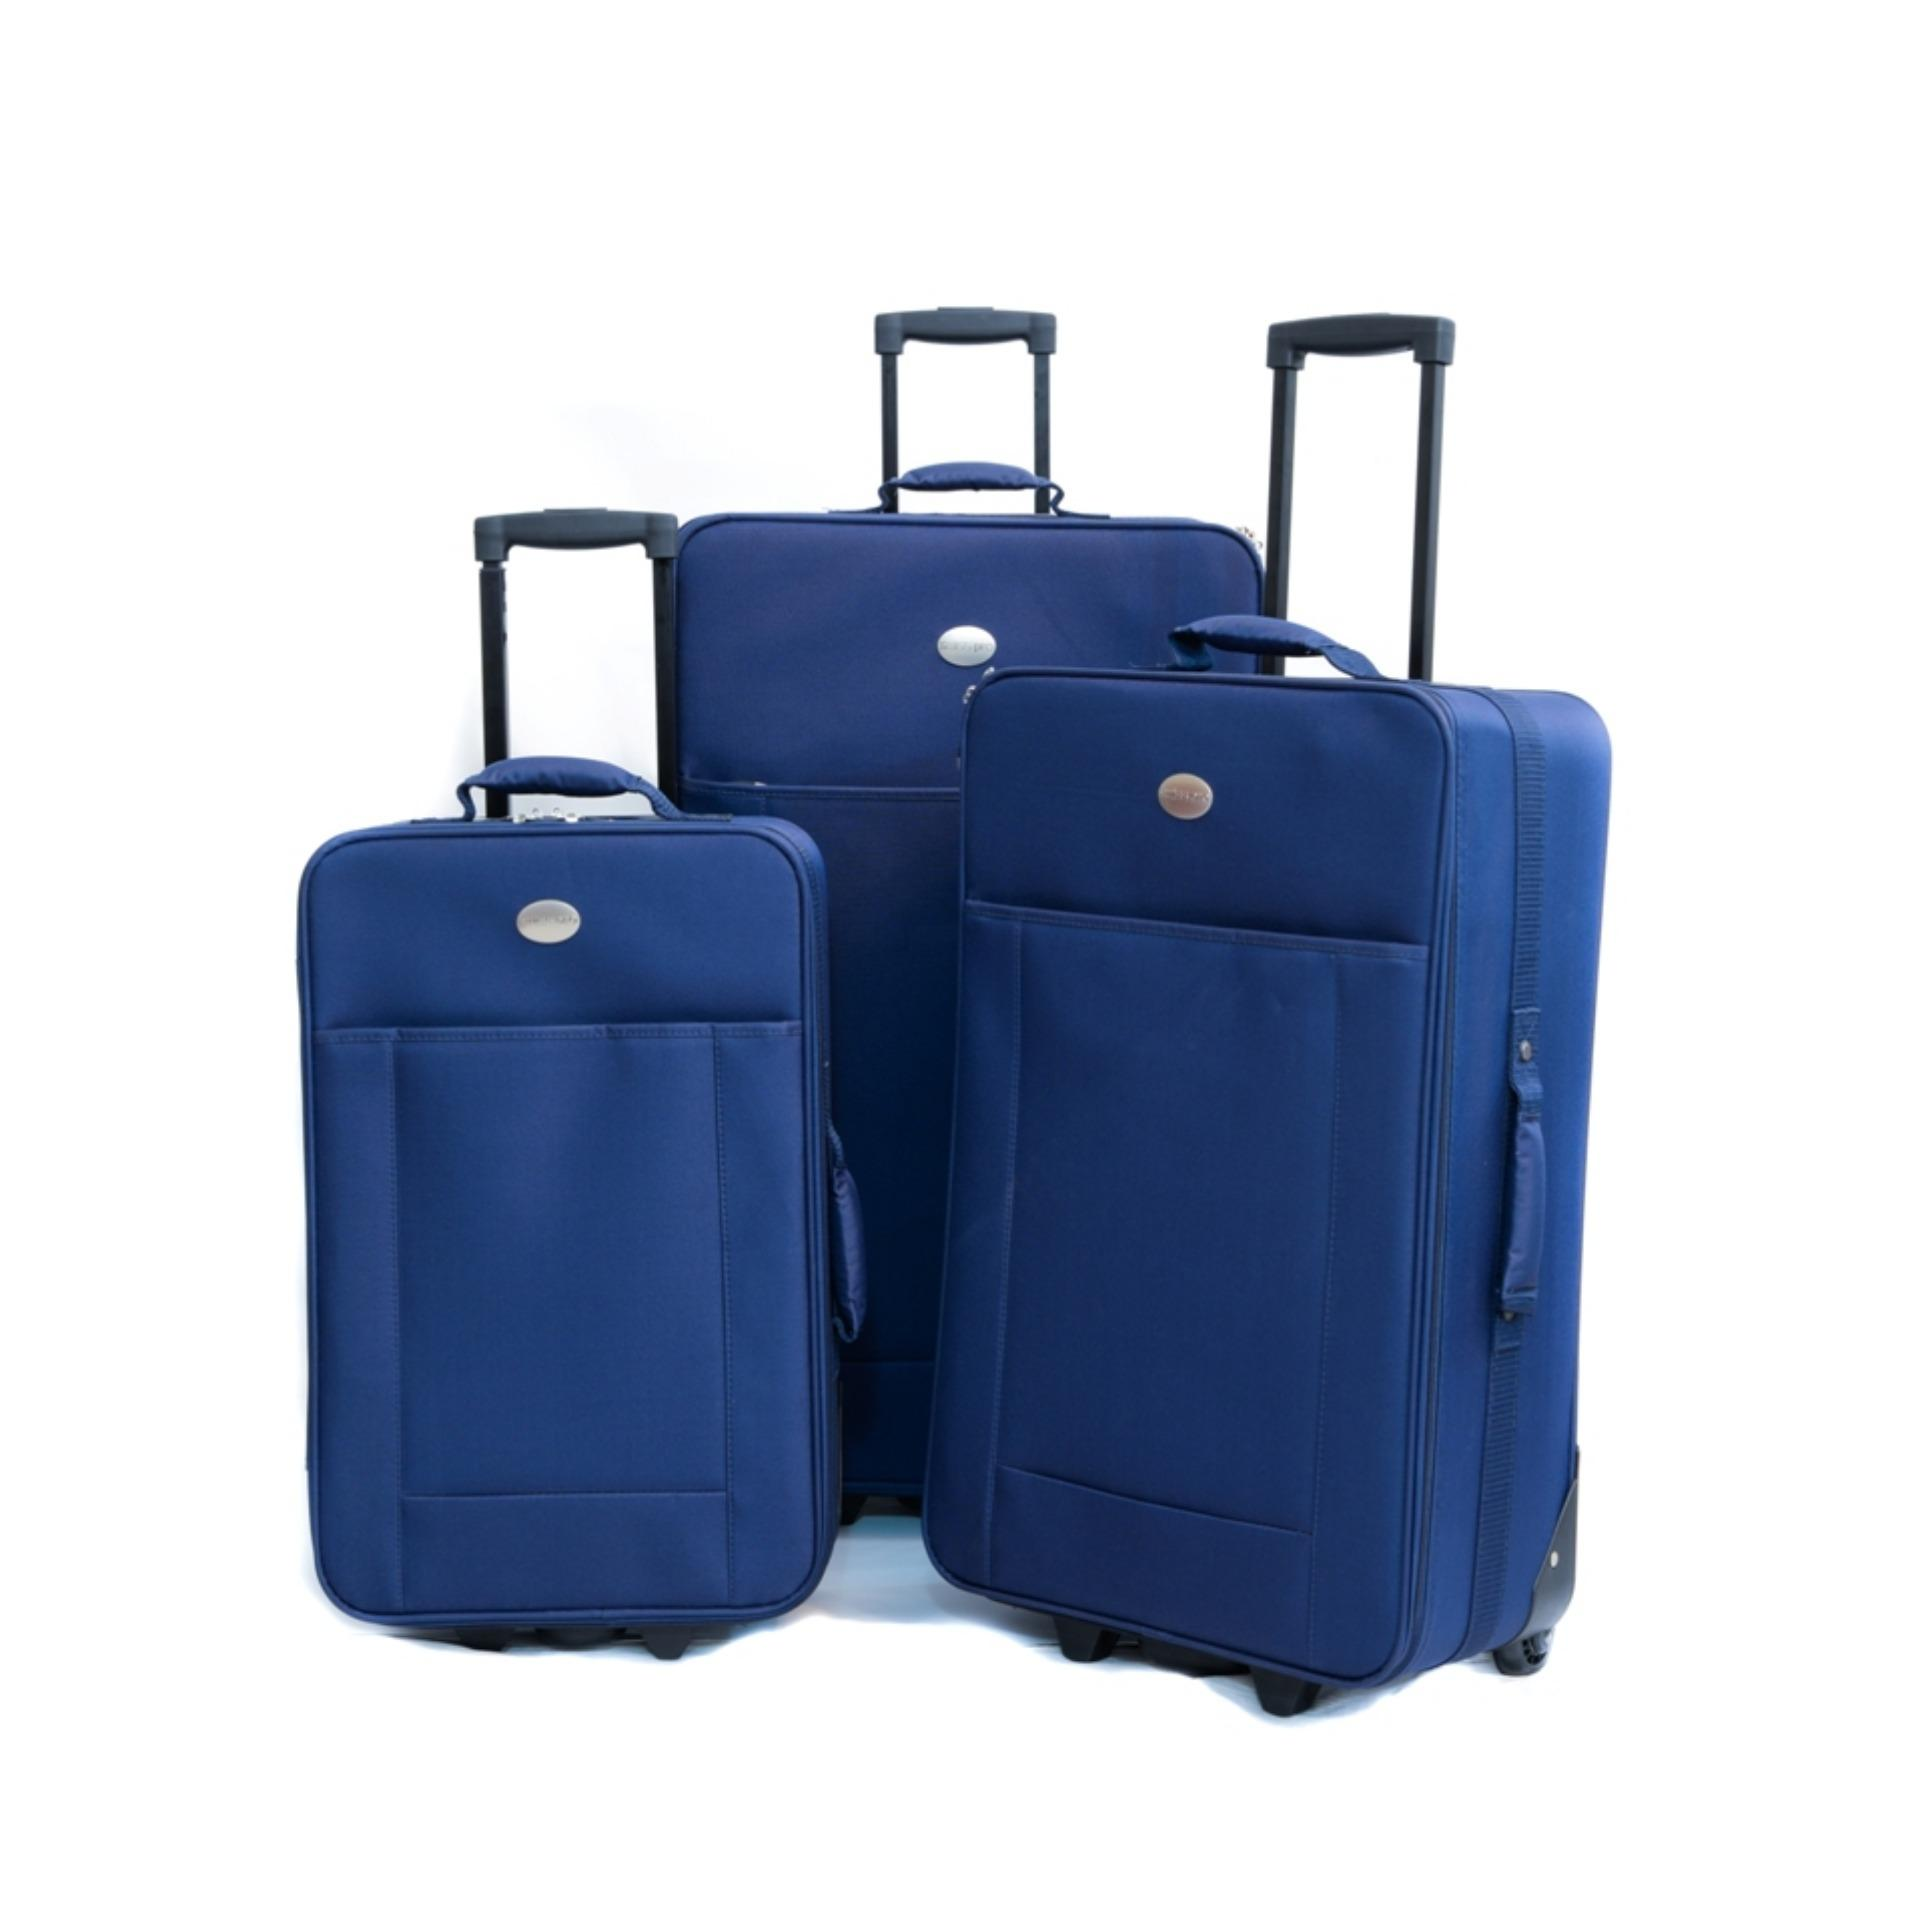 Luggage Shop  Carry-On Bags   Suitcases Online in Pakistan - Daraz.pk c92d6e1cd9